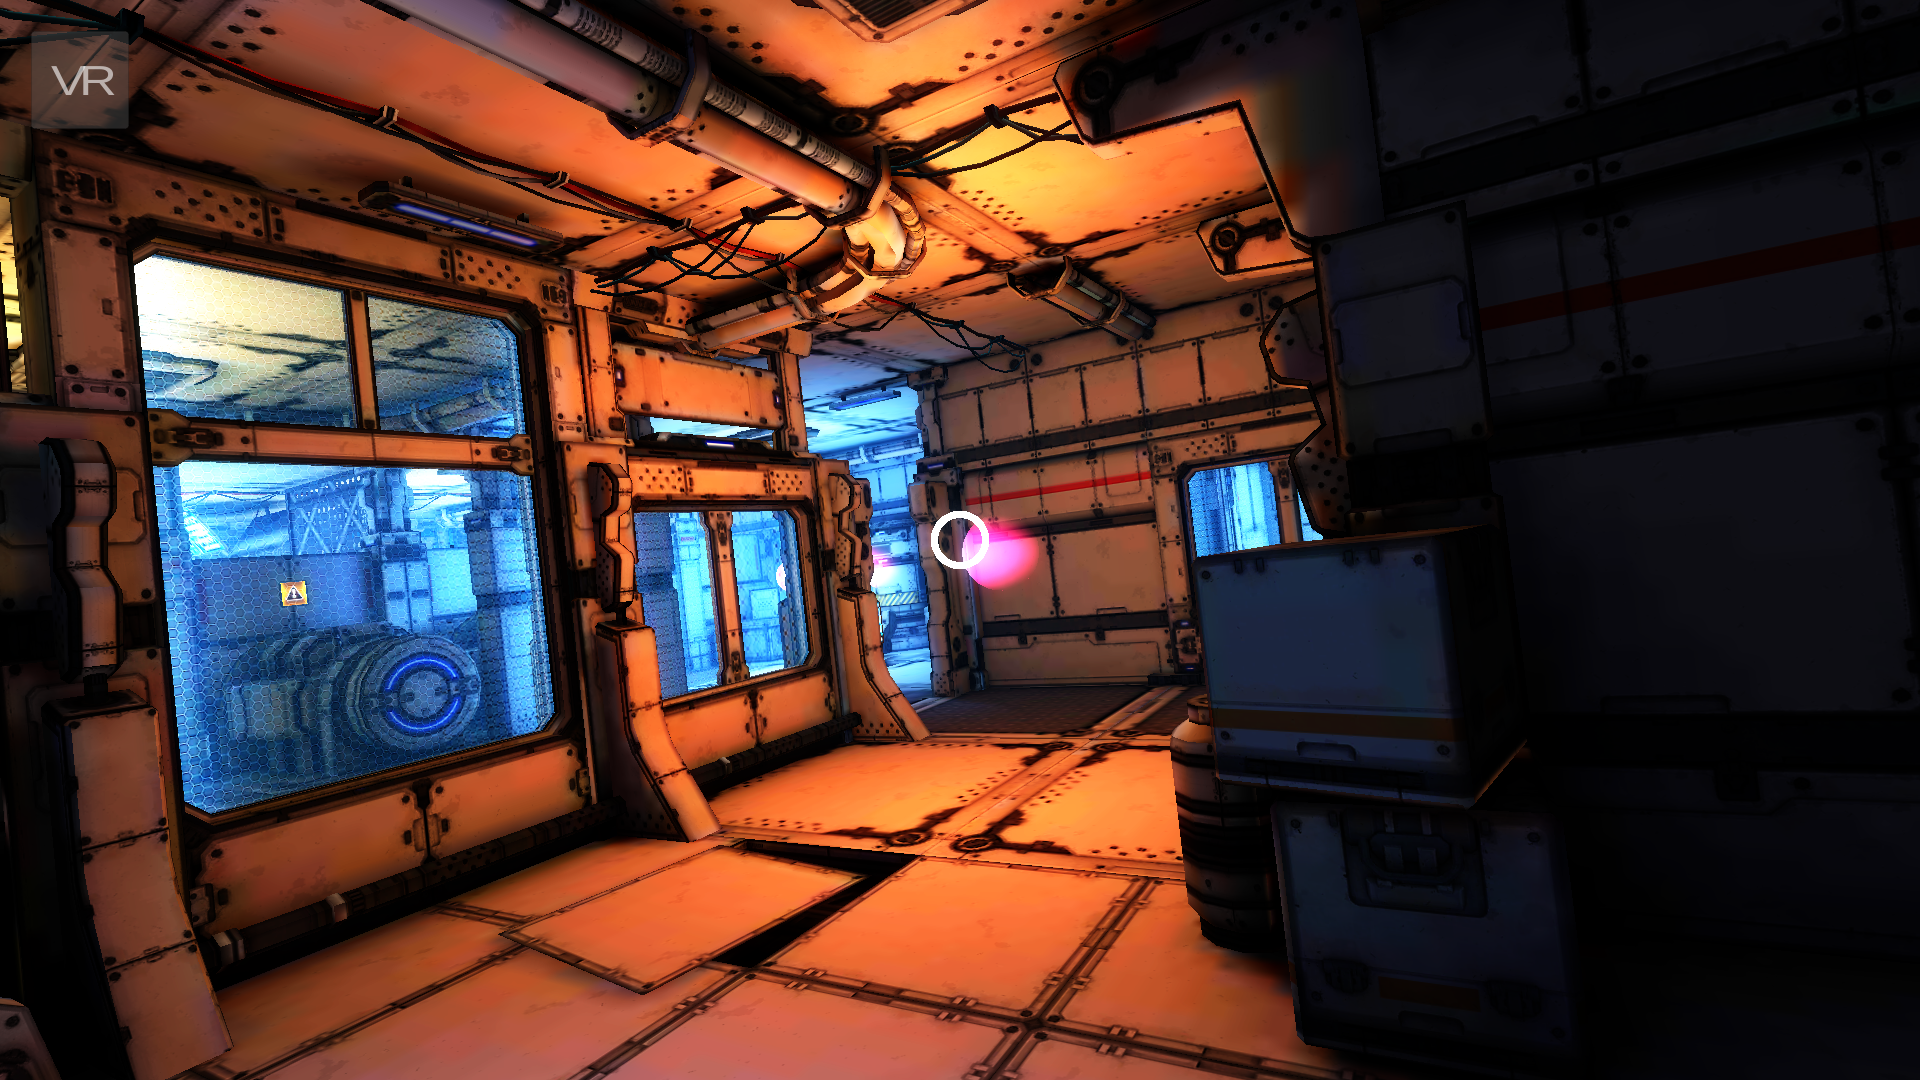 VR Spaceship: an immersive VR tease – The Southern Nerd